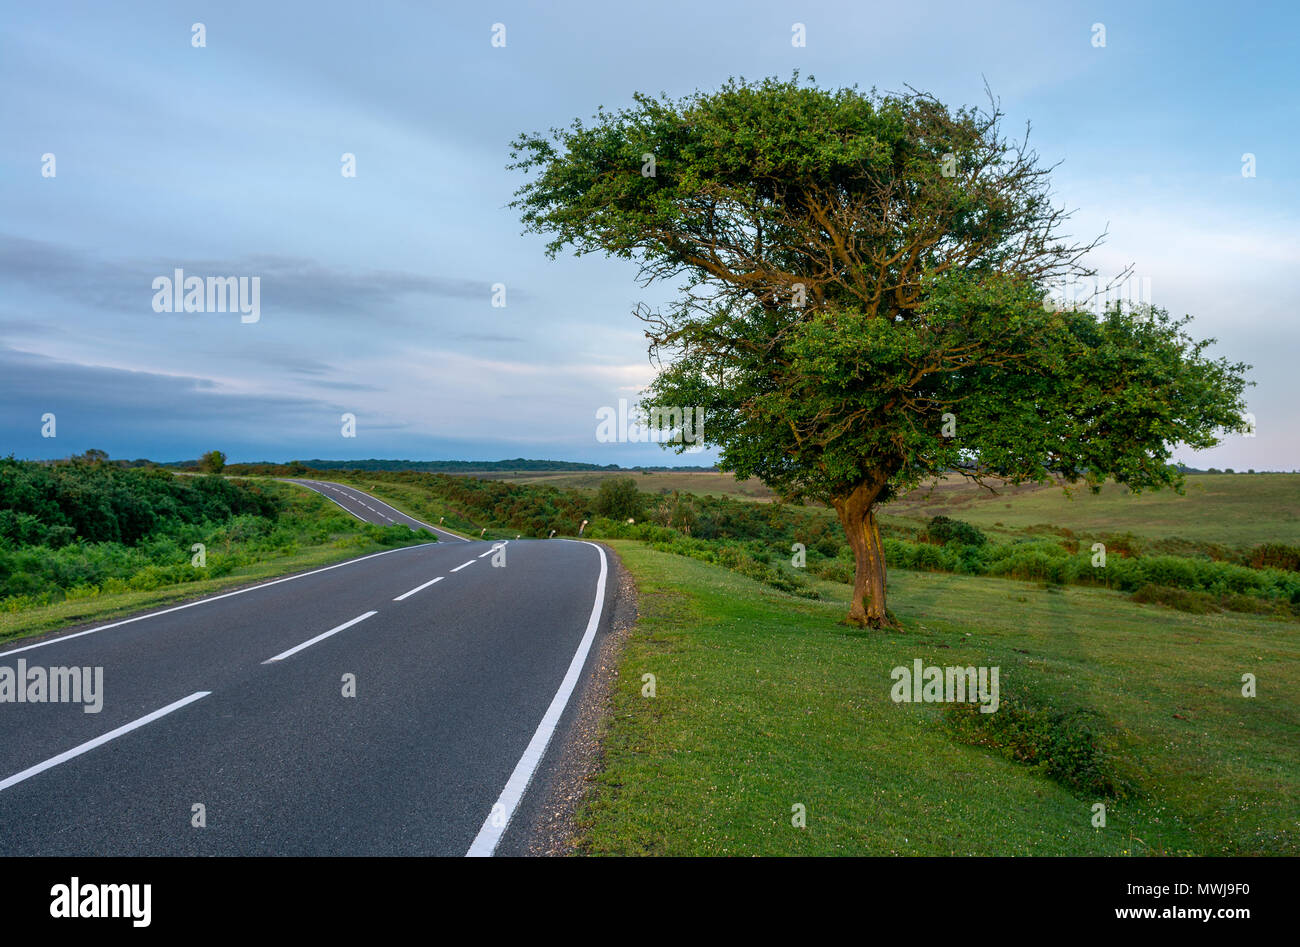 Solitary roadside tree which has been shaped by the prevailing wind New Forest, Hampshire, England, UK. - Stock Image